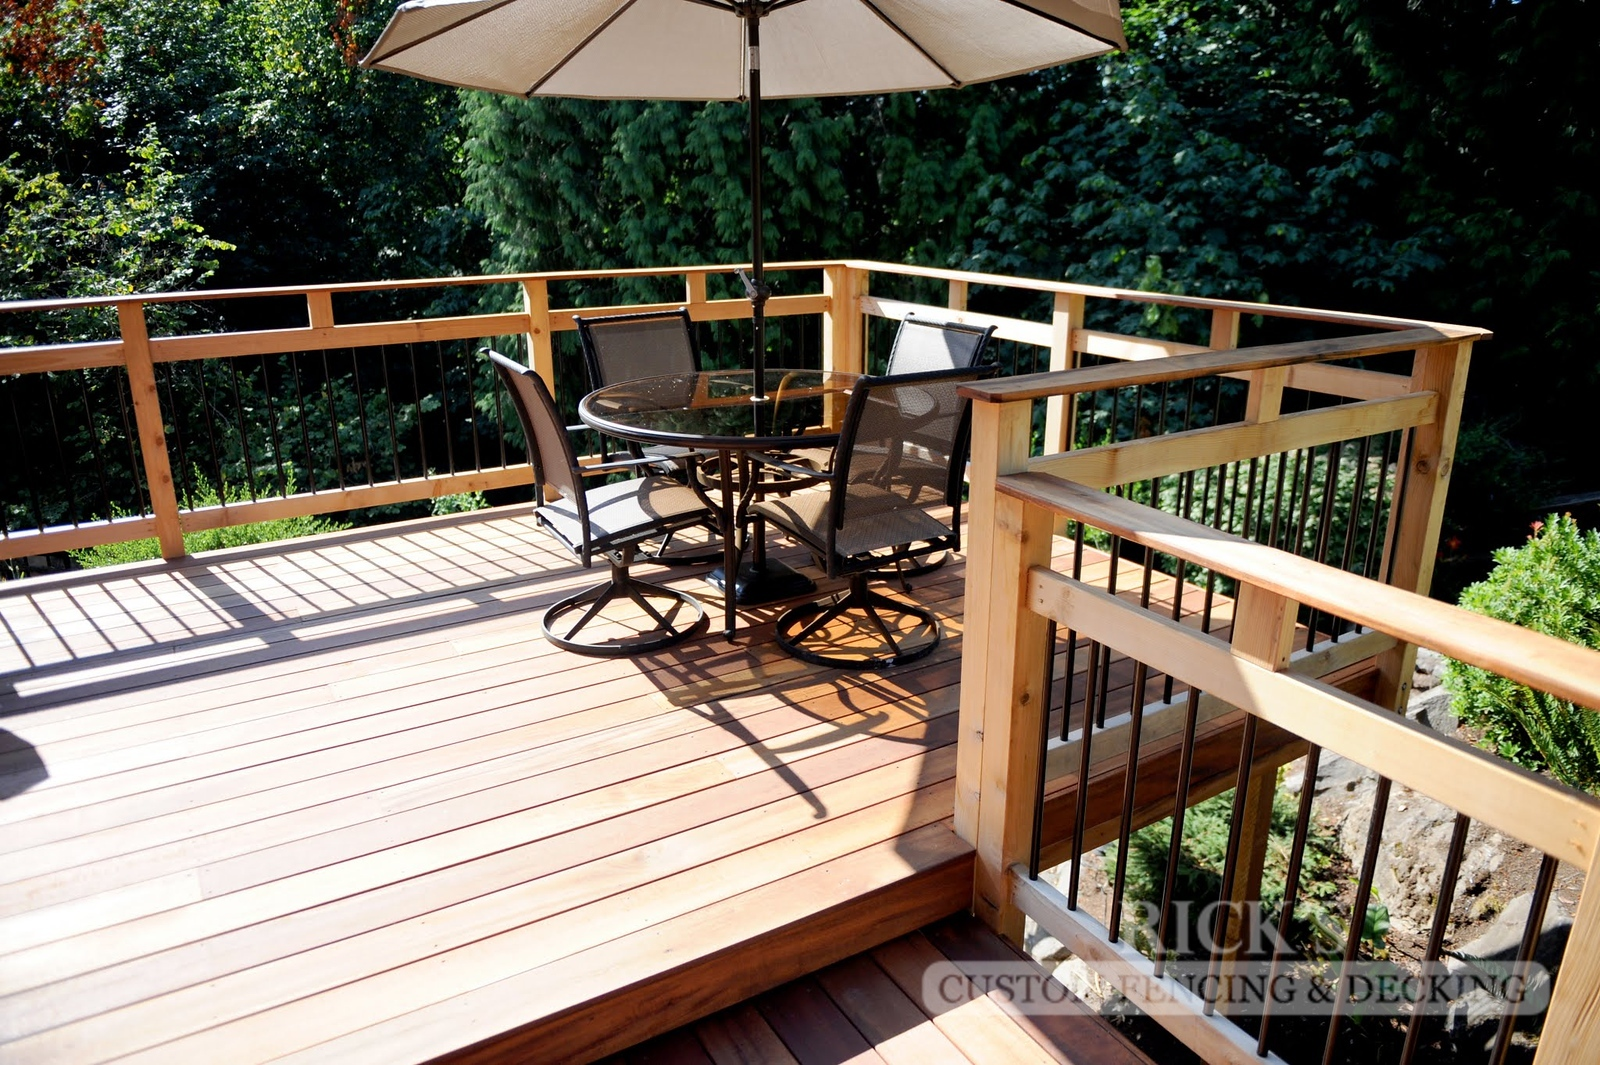 1120 - TigerWood Hardwood Decking